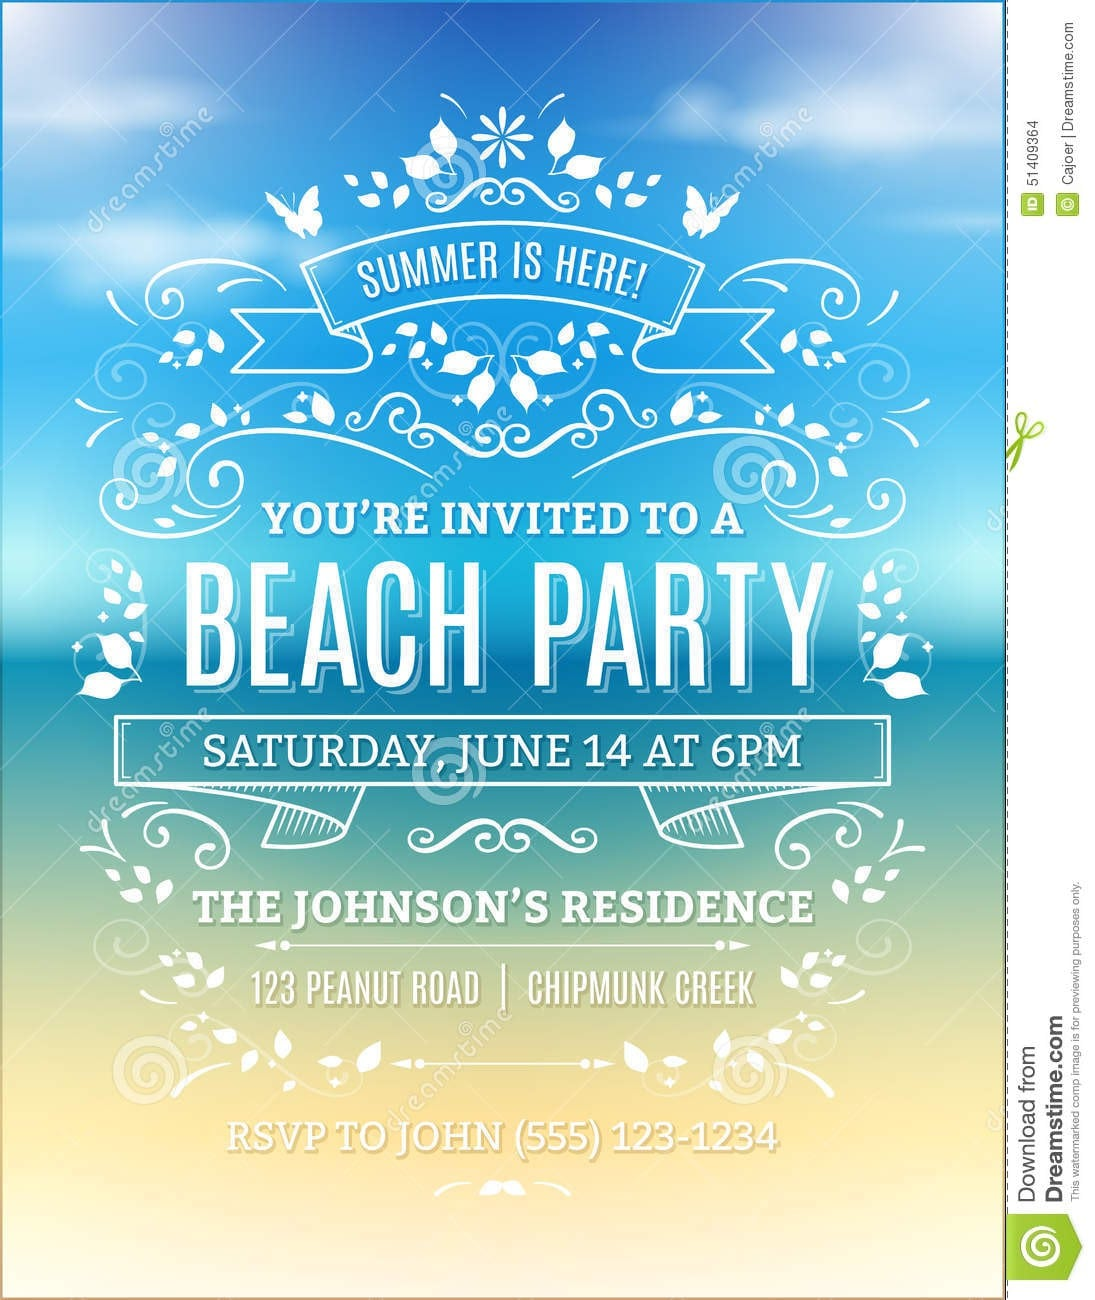 Beach Party Invitations Free Printable